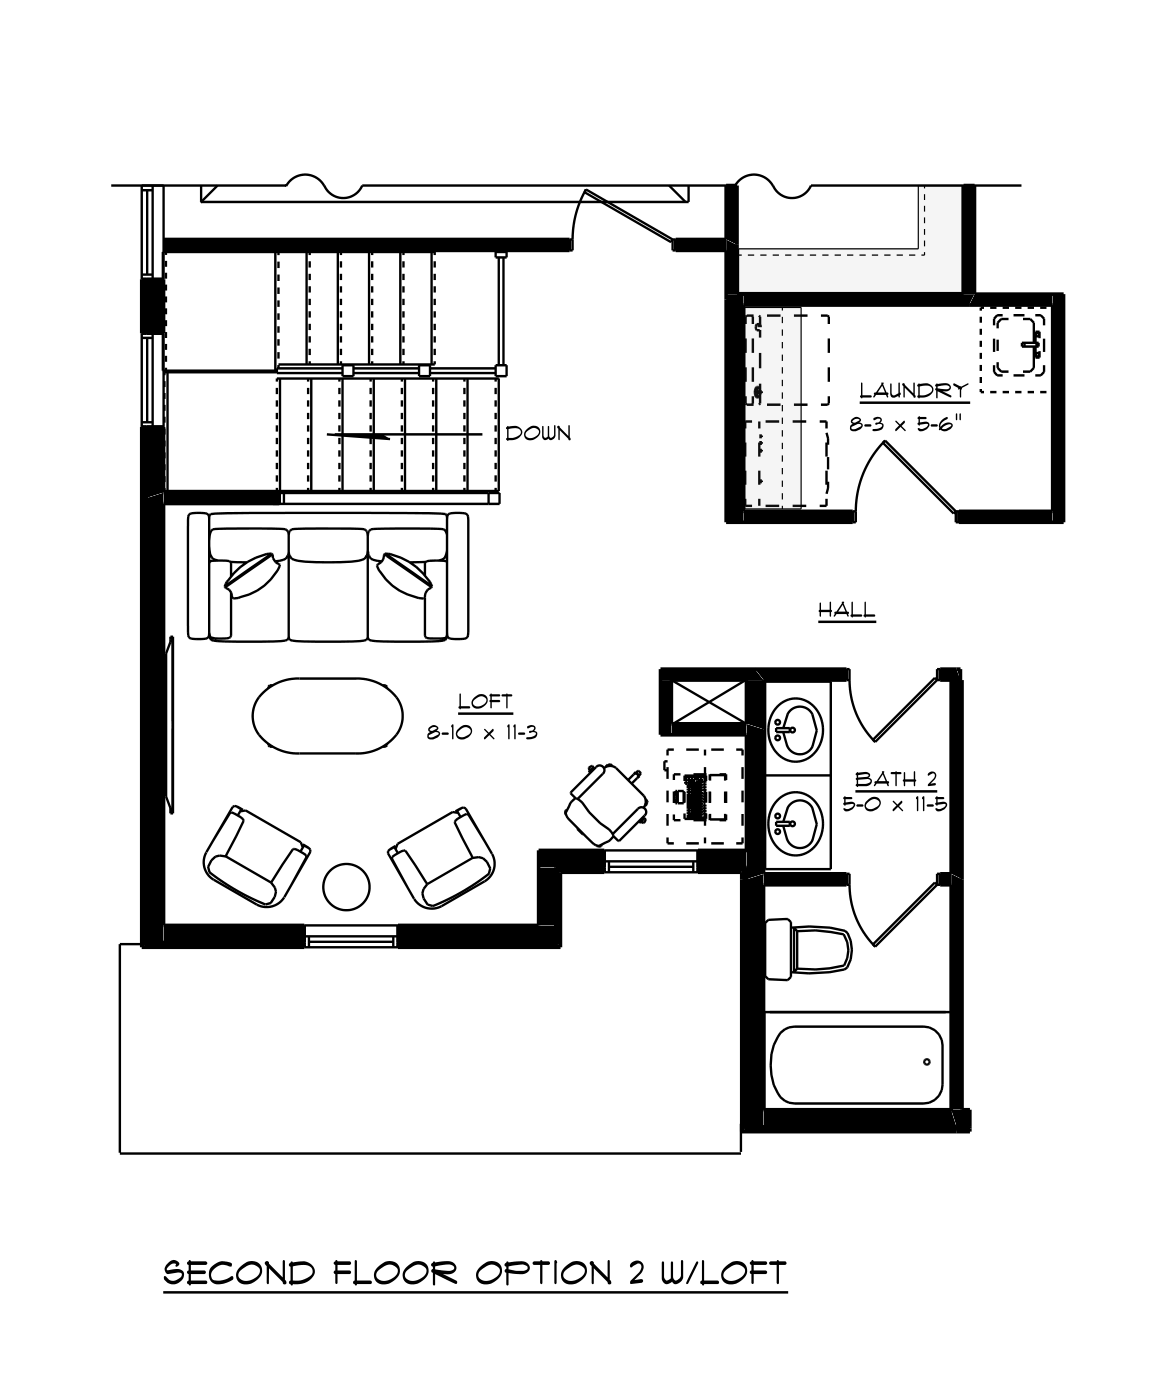 Stockton Second Floor Loft Layout